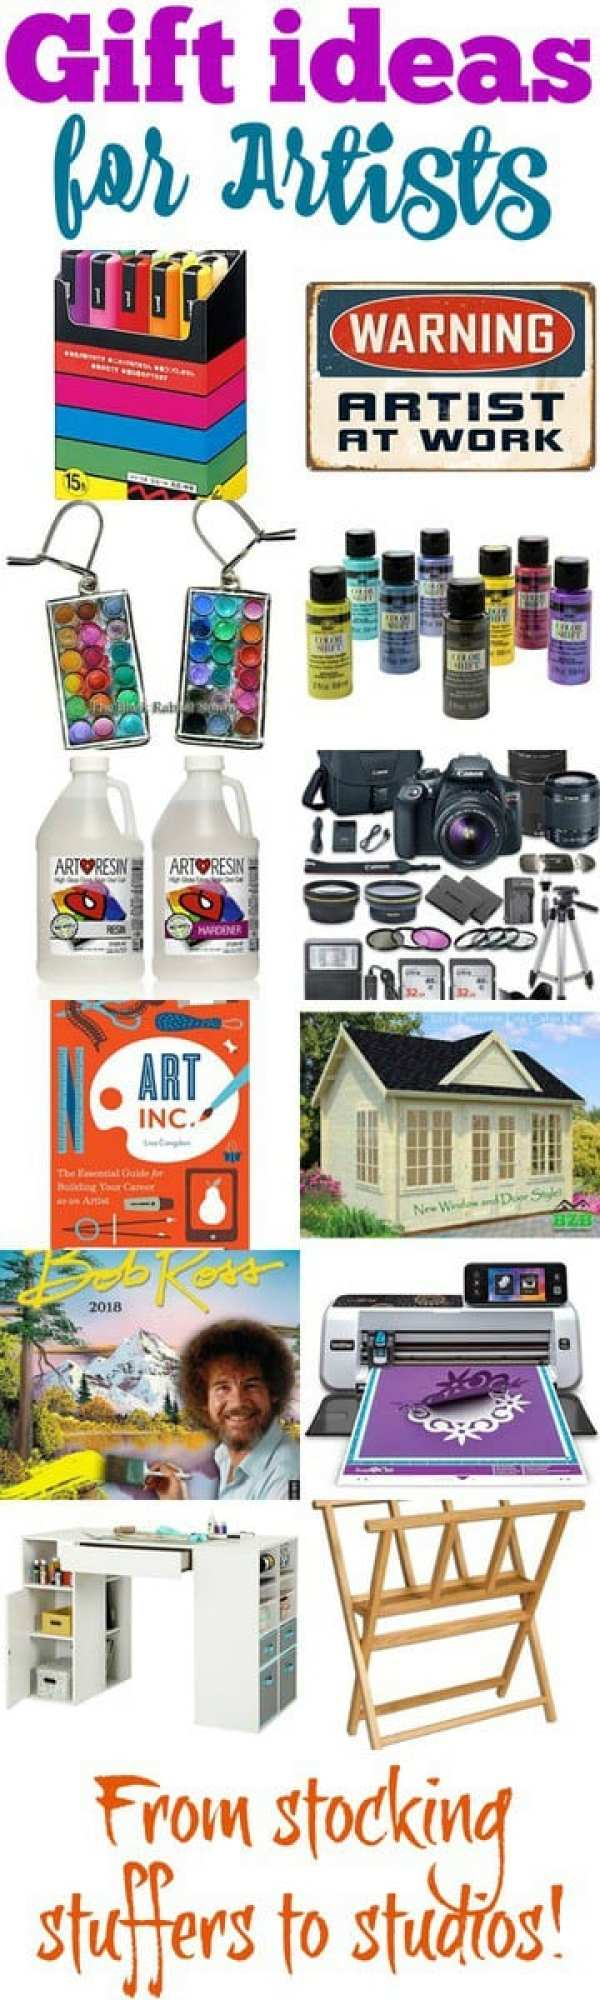 Gift ideas for artists. From stocking stuffers to studios and everything in between. Lots of fun and practical gift ideas for the artist in you or in your life